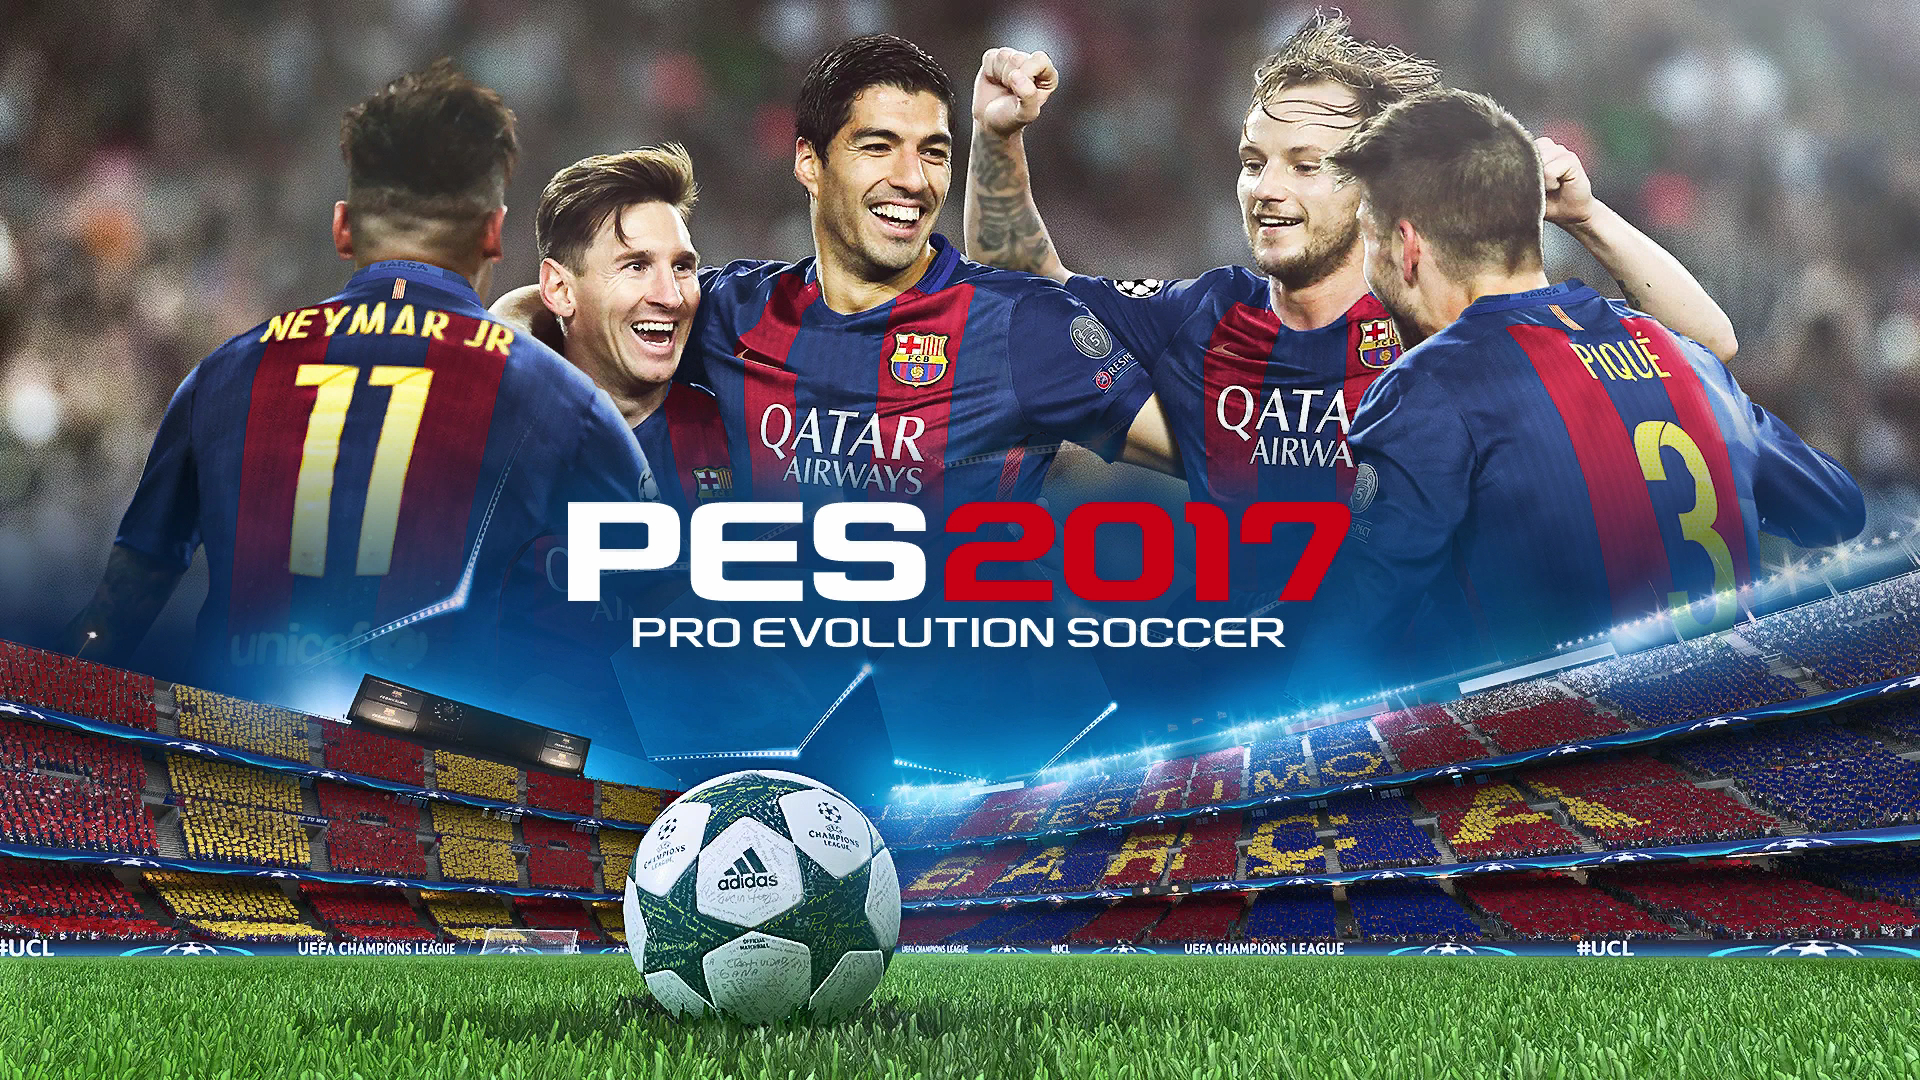 Konami Corp. representatives replied to Diego Maradona's accusation